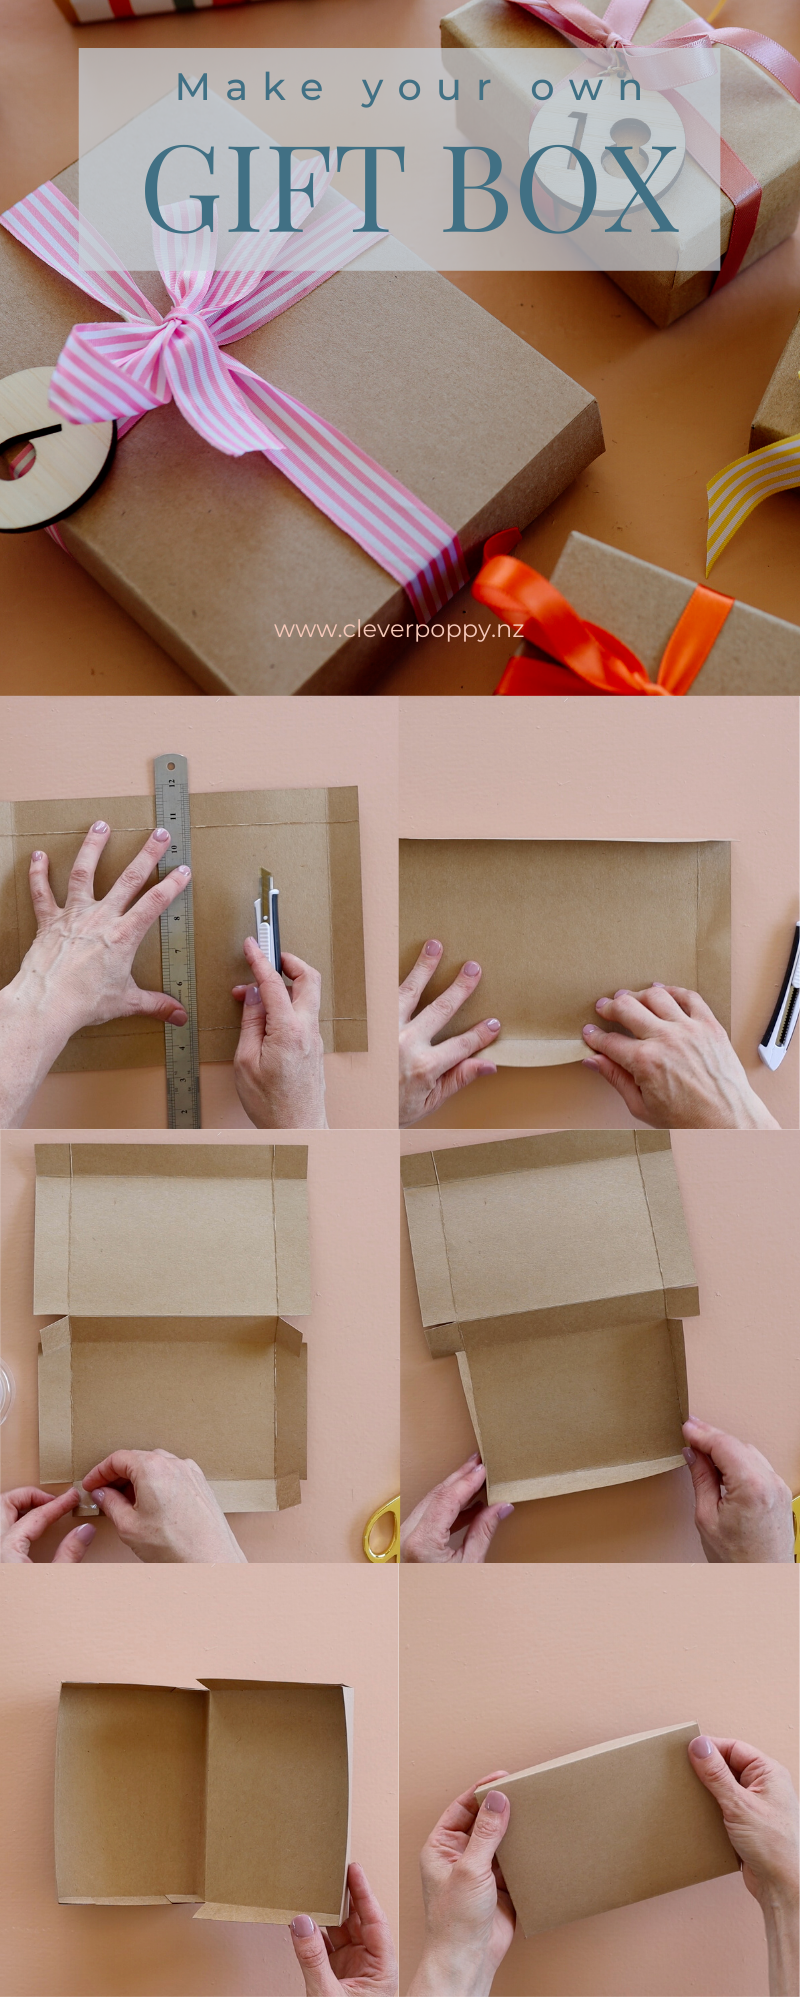 Make Your Own Cardboard Gift Boxes No Template Needed Clever Poppy Diy Gift Box Template Homemade Gift Boxes Gift Box Template